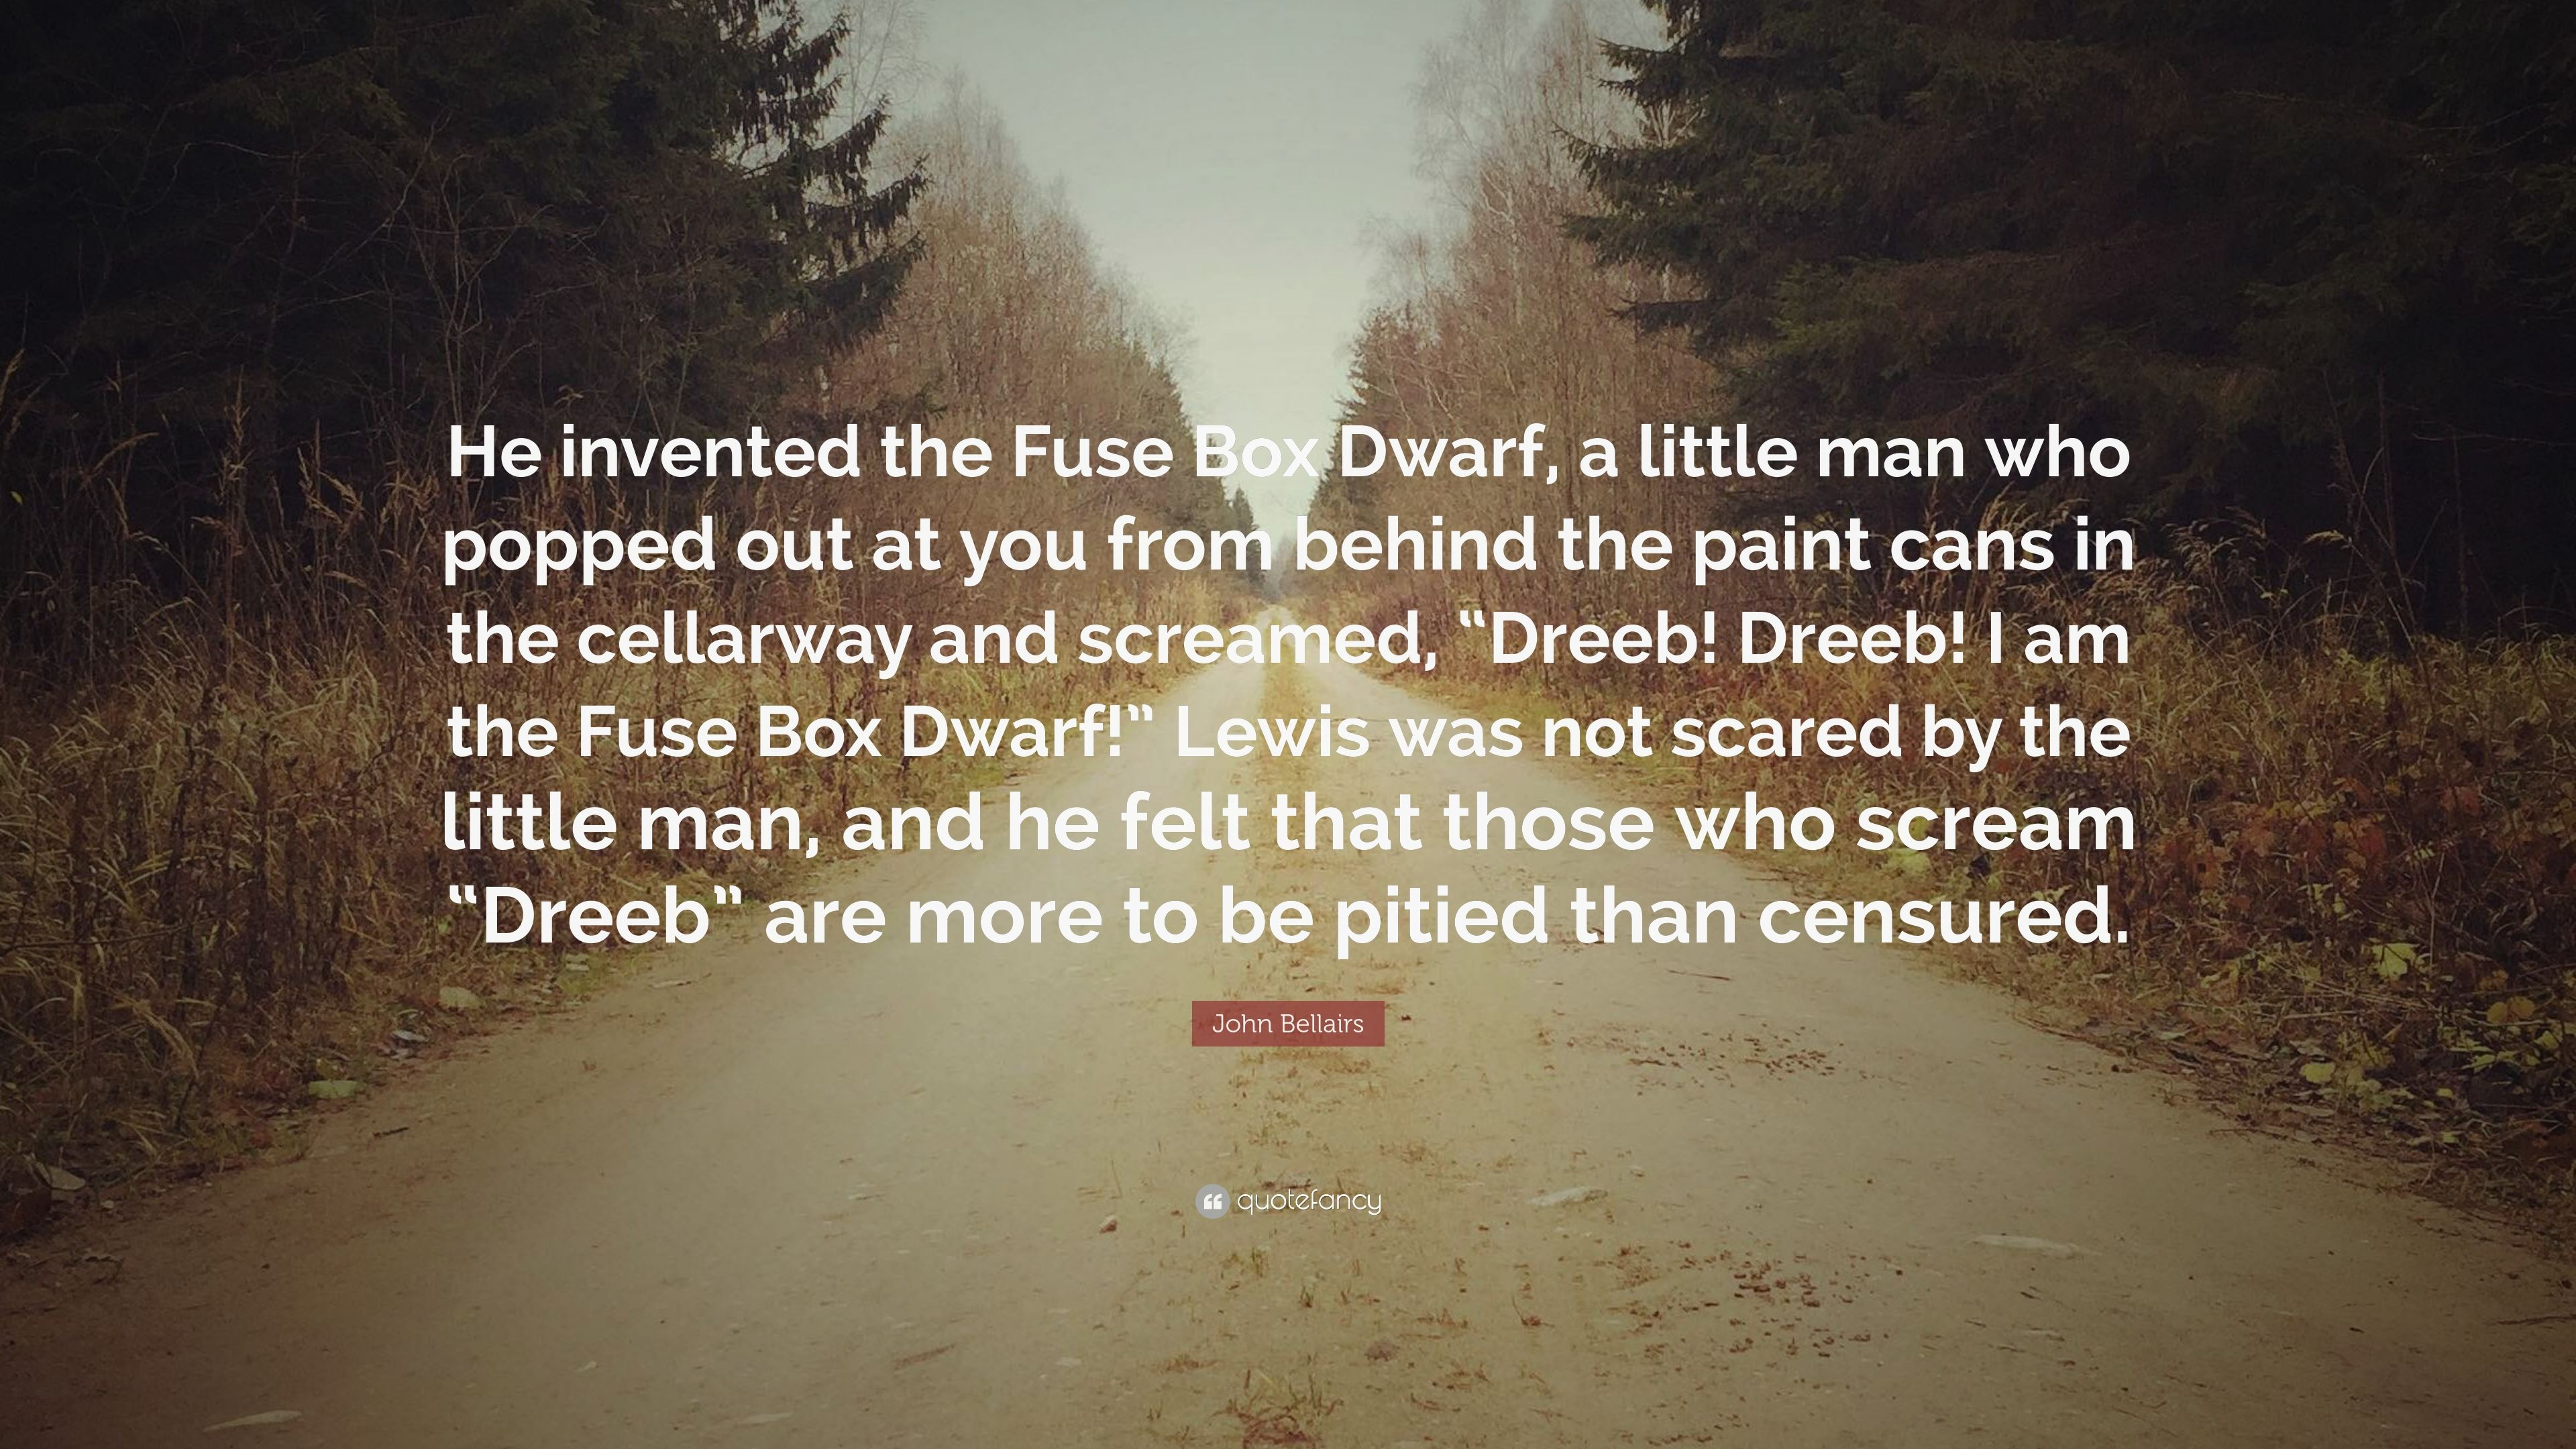 3297082 John Bellairs Quote He invented the Fuse Box Dwarf a little man john bellairs quote \u201che invented the fuse box dwarf, a little man  at edmiracle.co